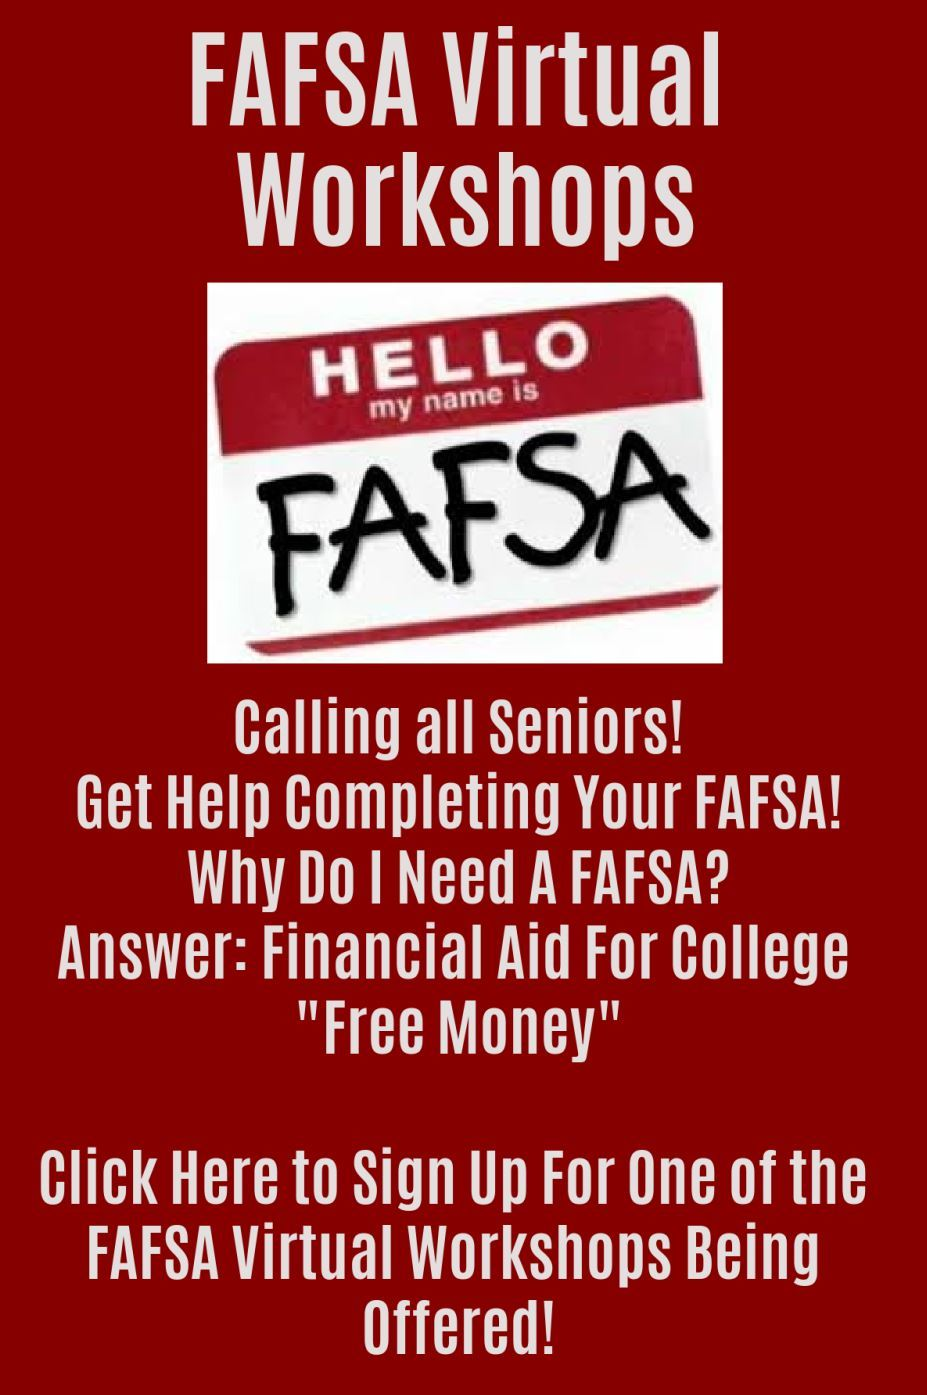 FAFSA Workshop - Click Here To Sign Up